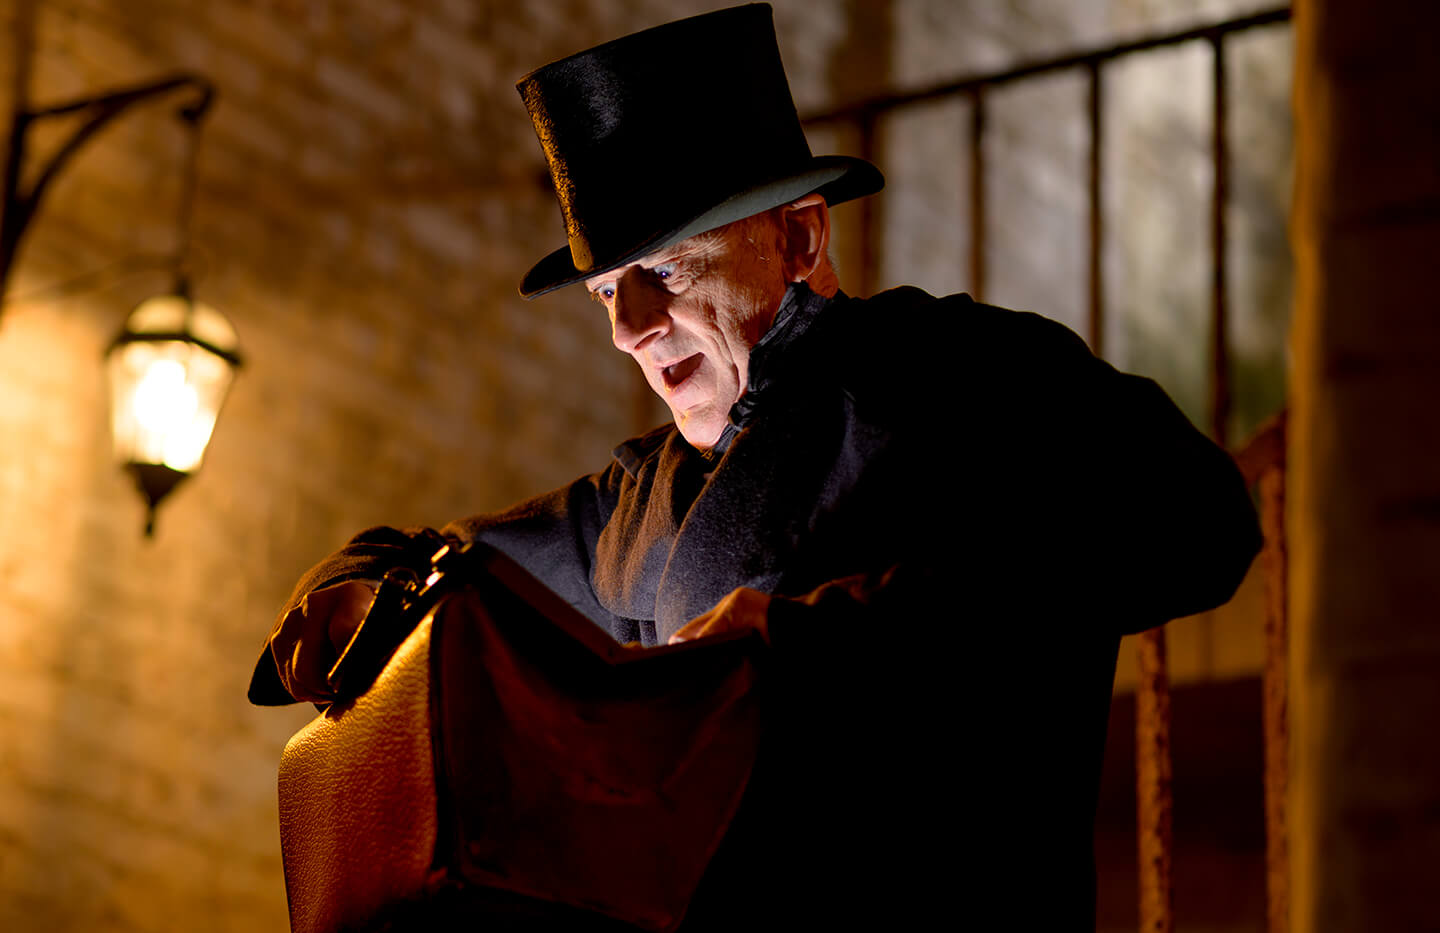 Creepy victorian man in top hat staring malevolently into a doctor's bag